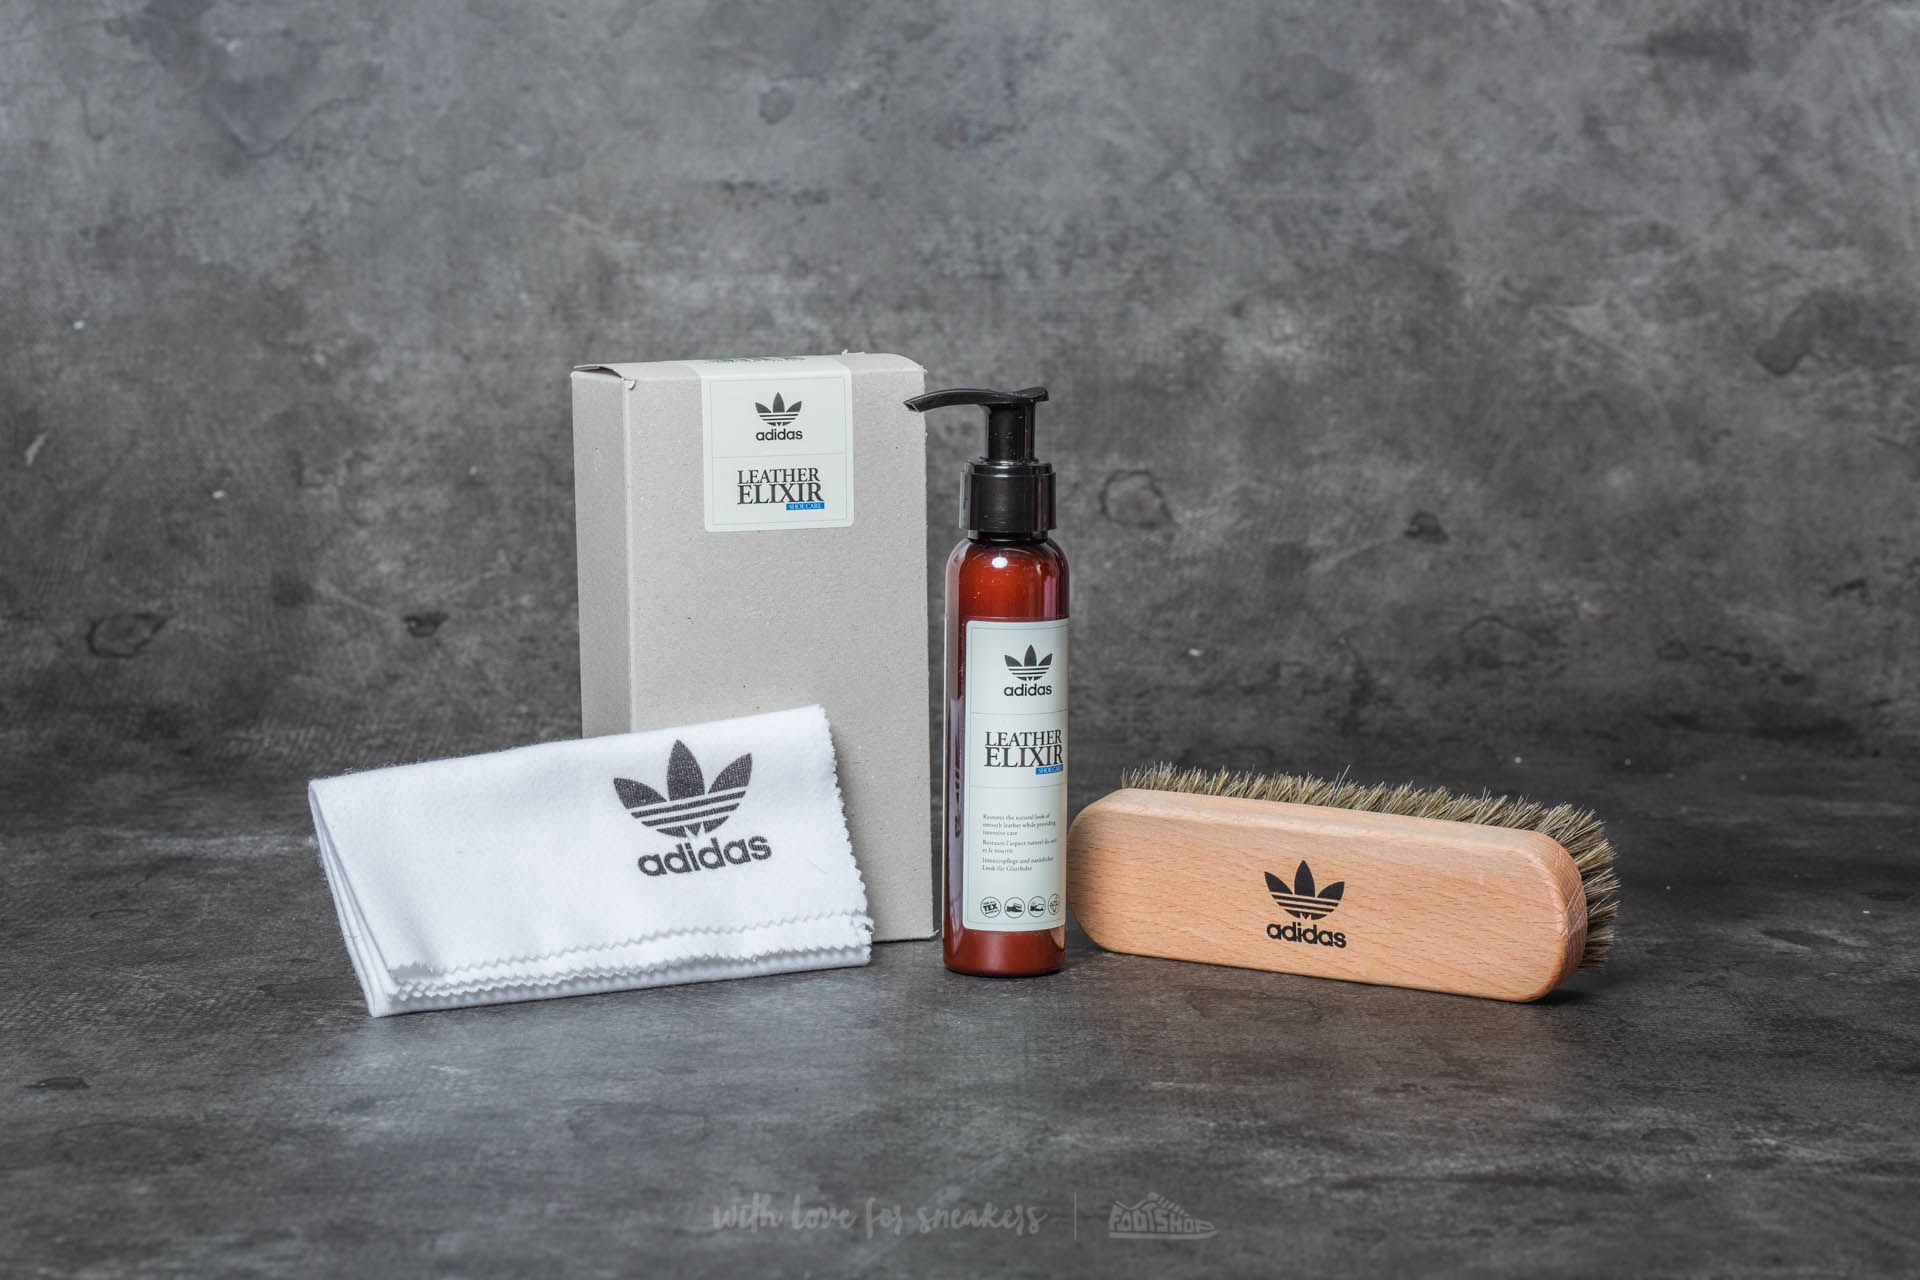 adidas Leather Elixir Shoe Care